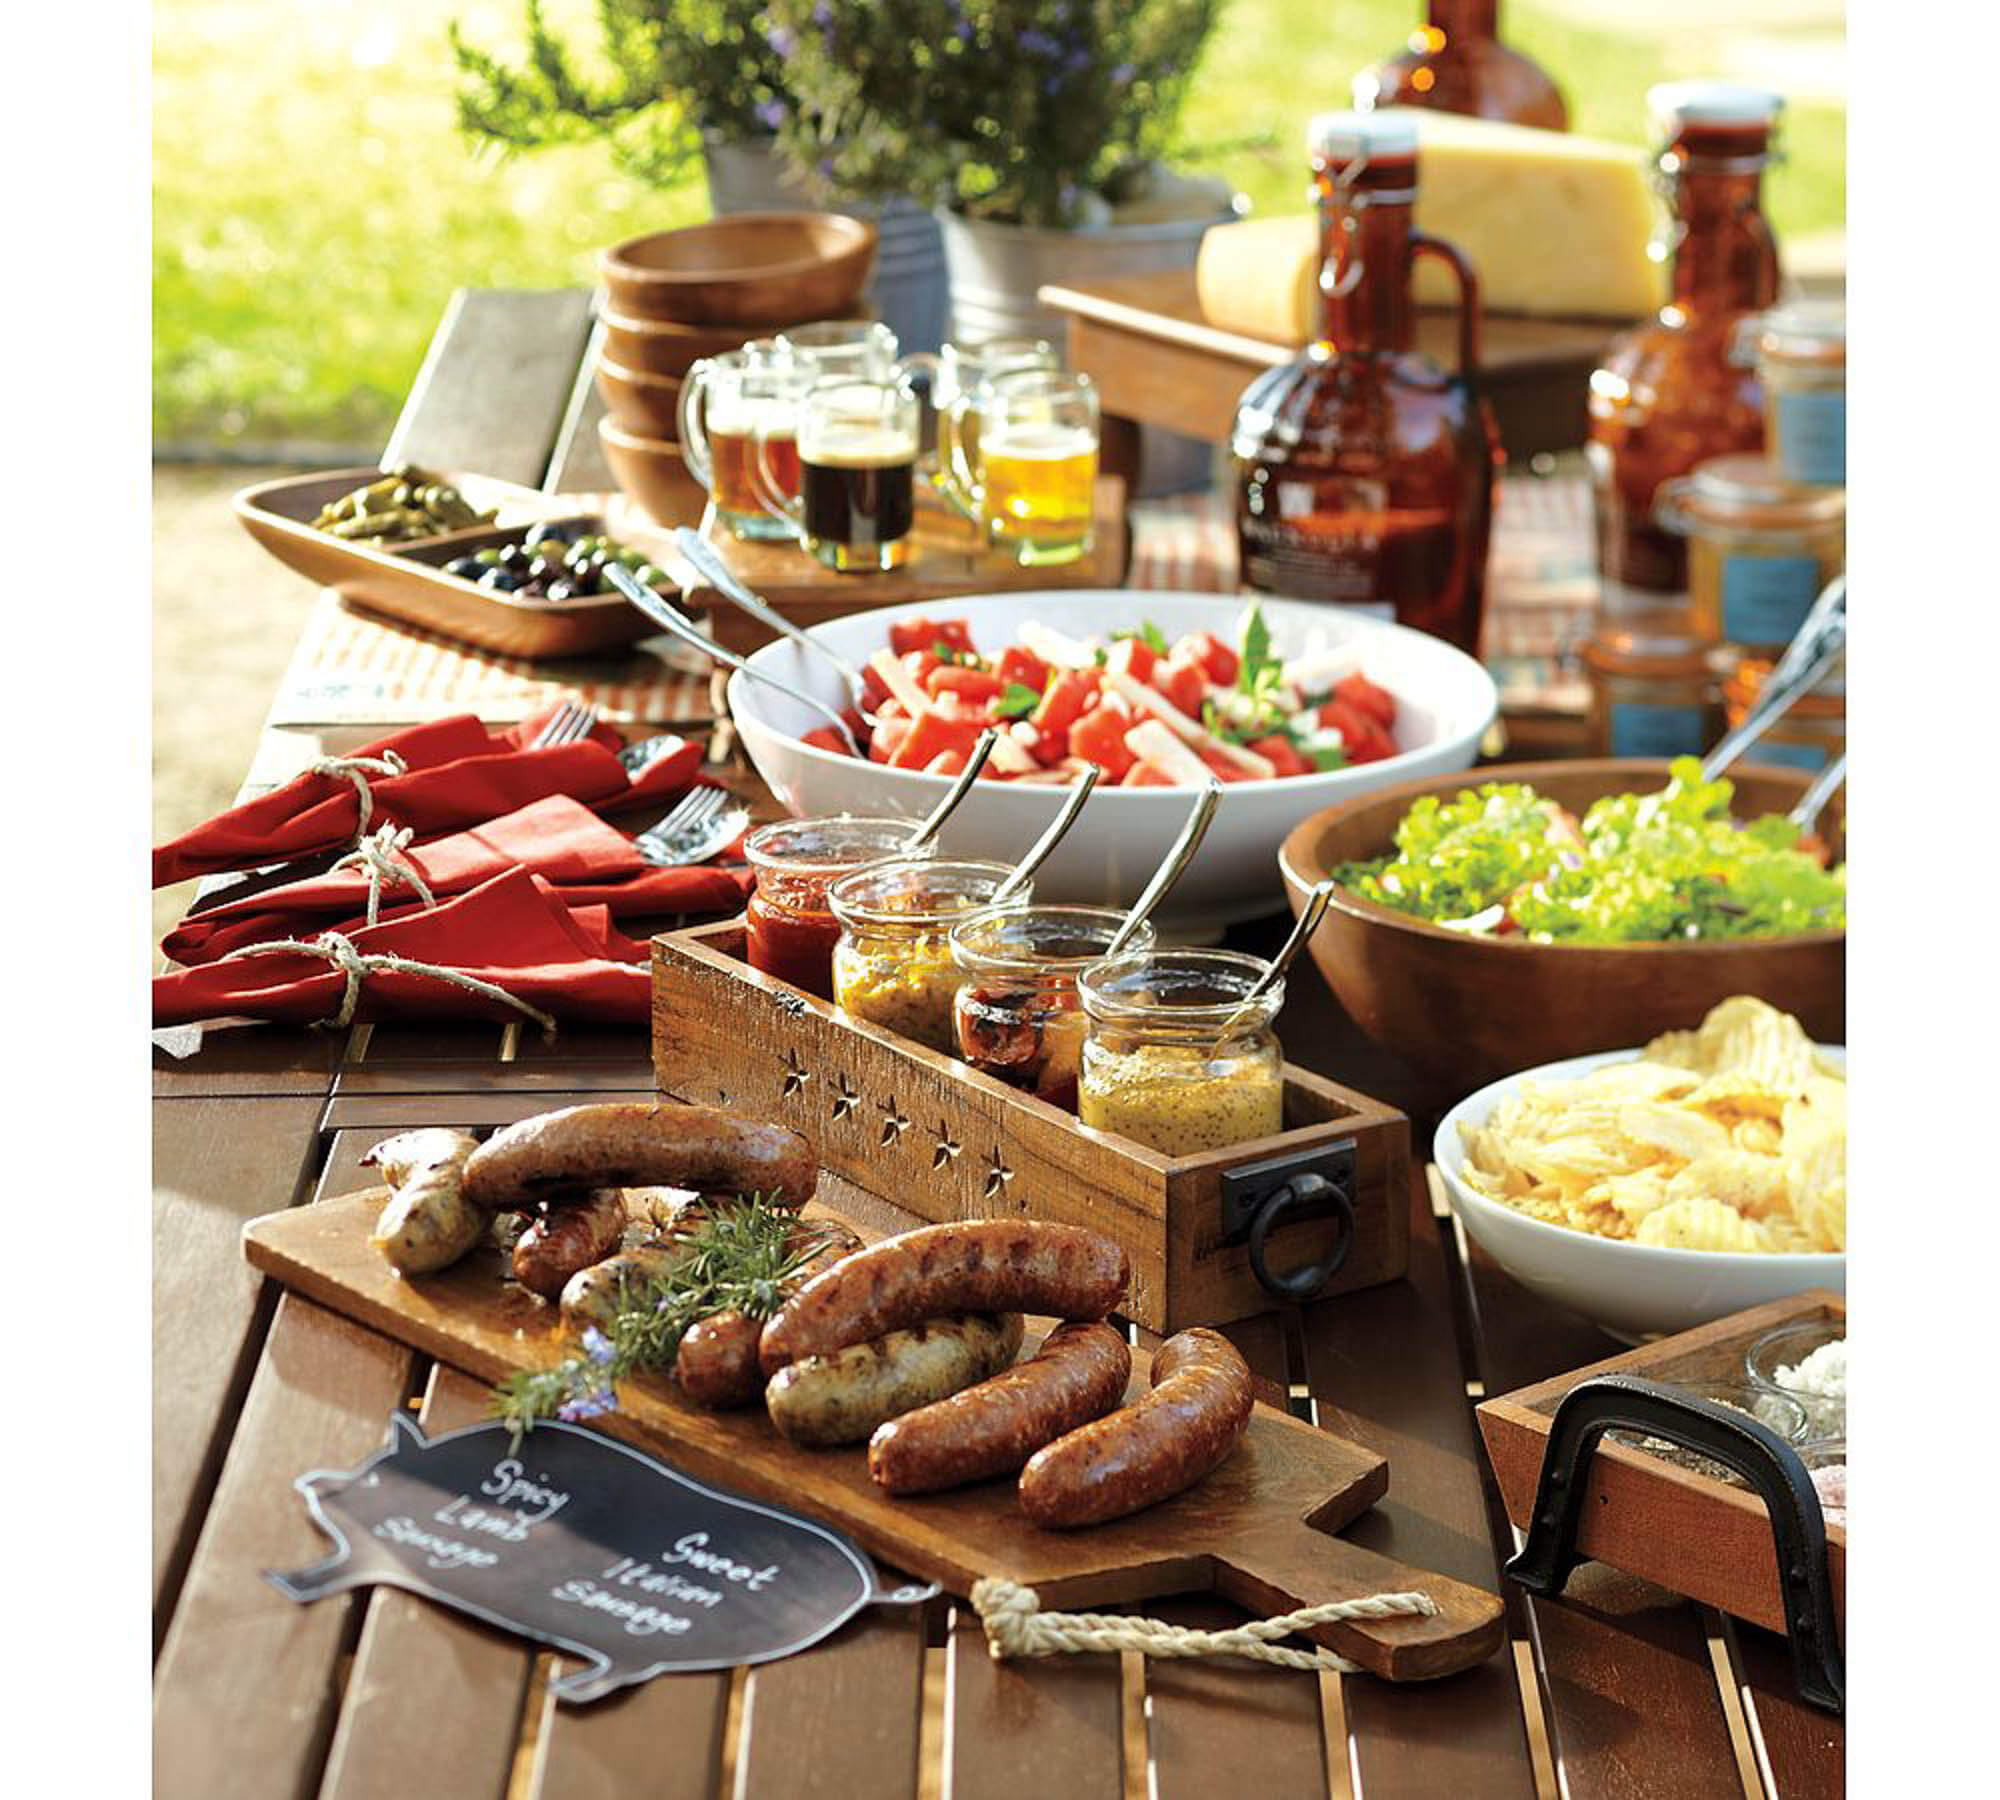 How To Host A Backyard Party Bbq Gentlemans Gazette inside 12 Clever Designs of How to Improve Backyard Bbq Party Ideas